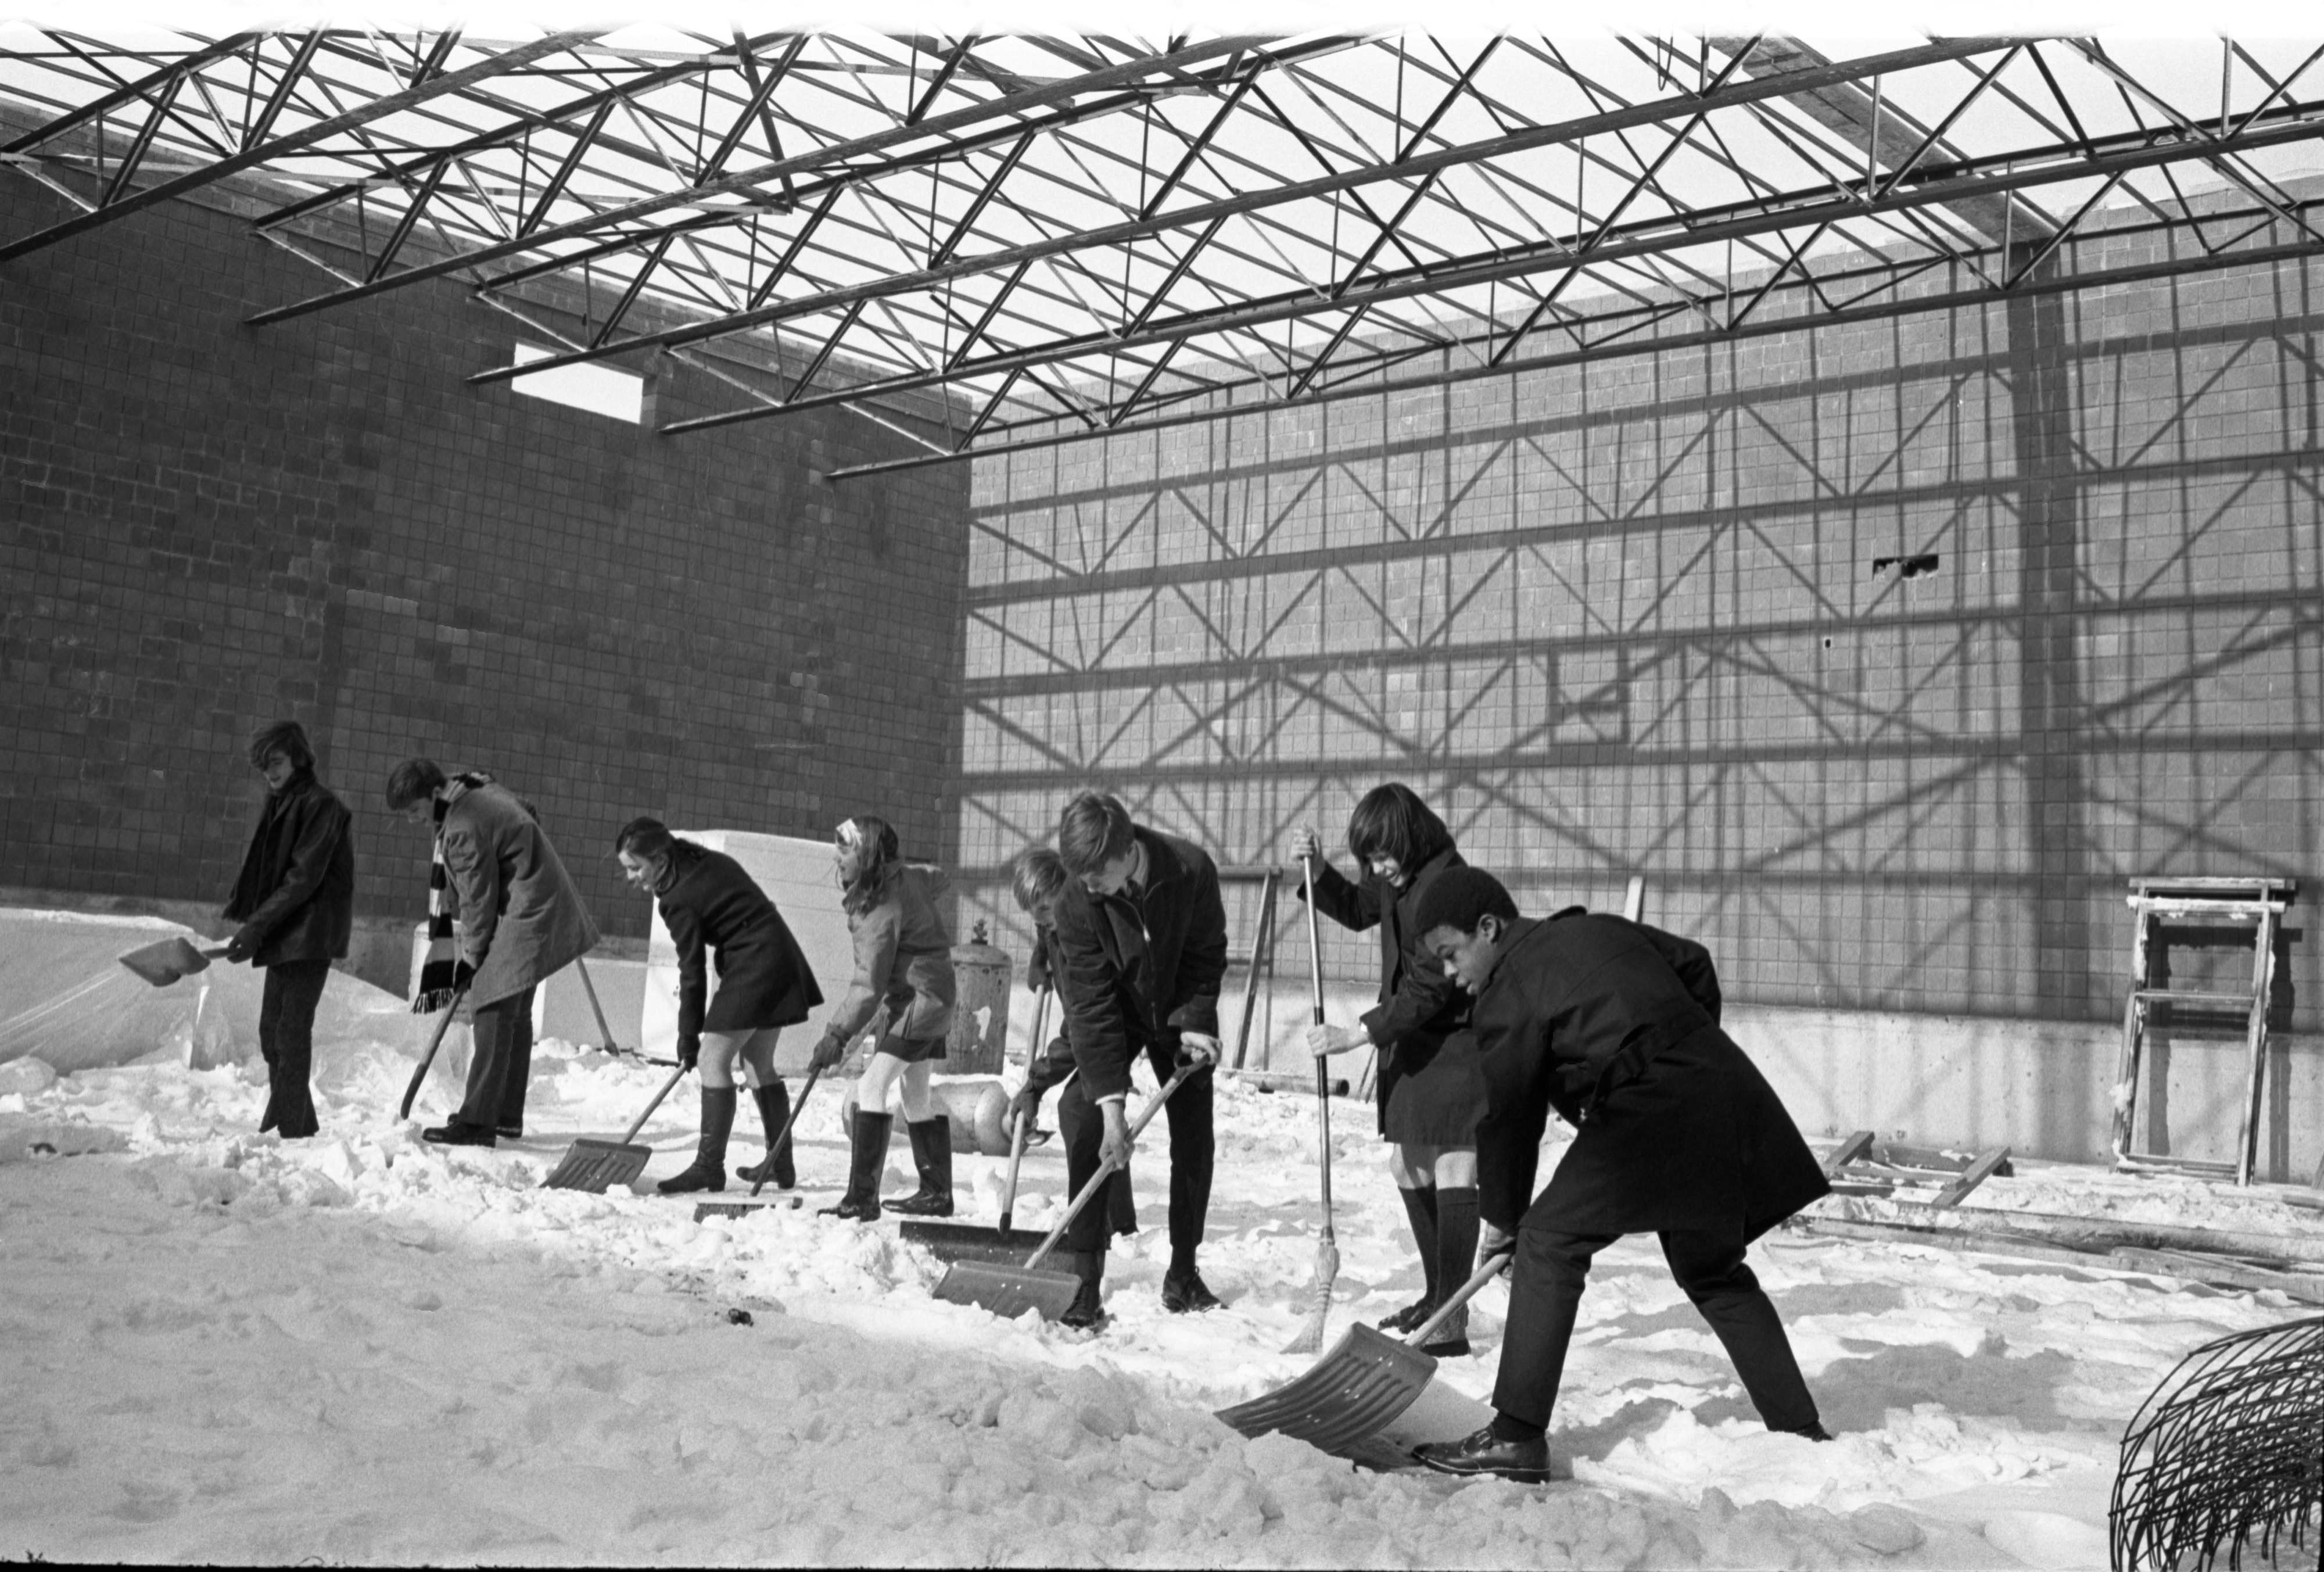 Greenhills Students Shovel Snow At School, January 11, 1970 image